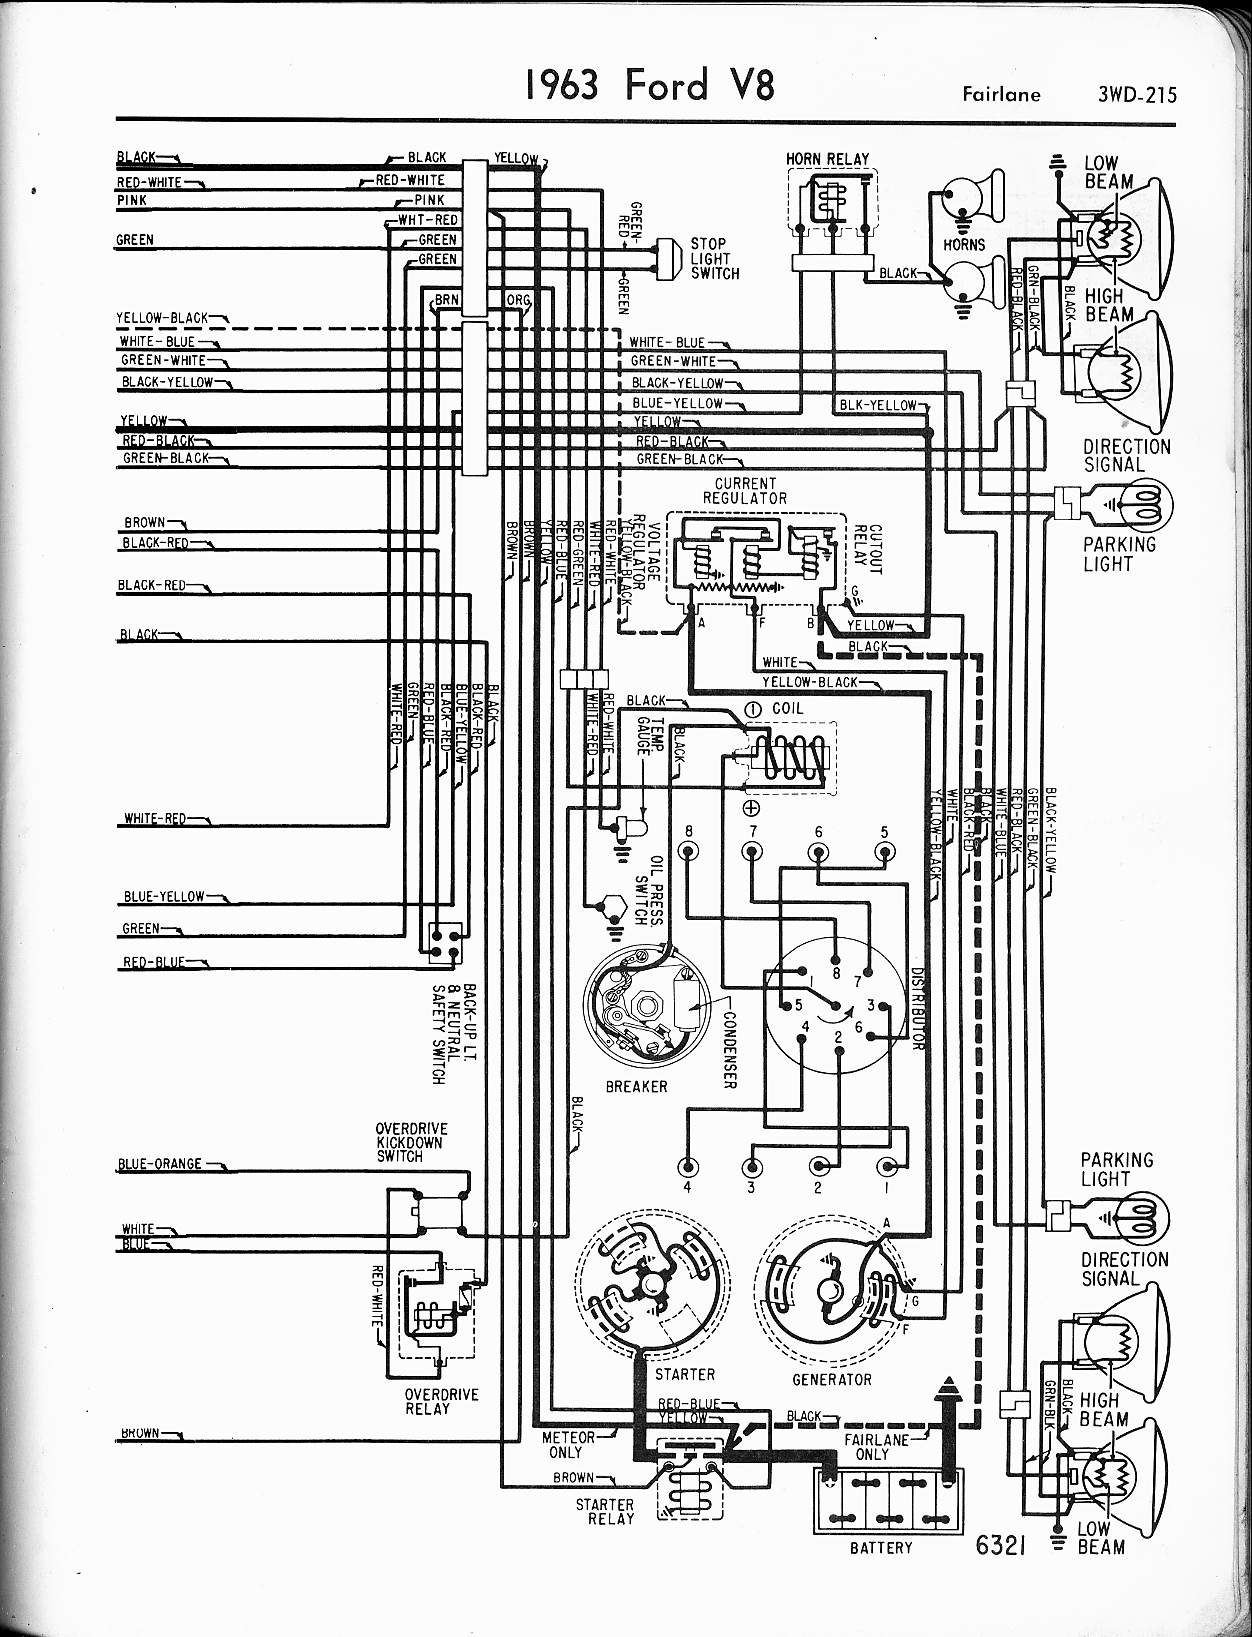 MWire5765 215 57 65 ford wiring diagrams 63 falcon wiring diagram at gsmx.co